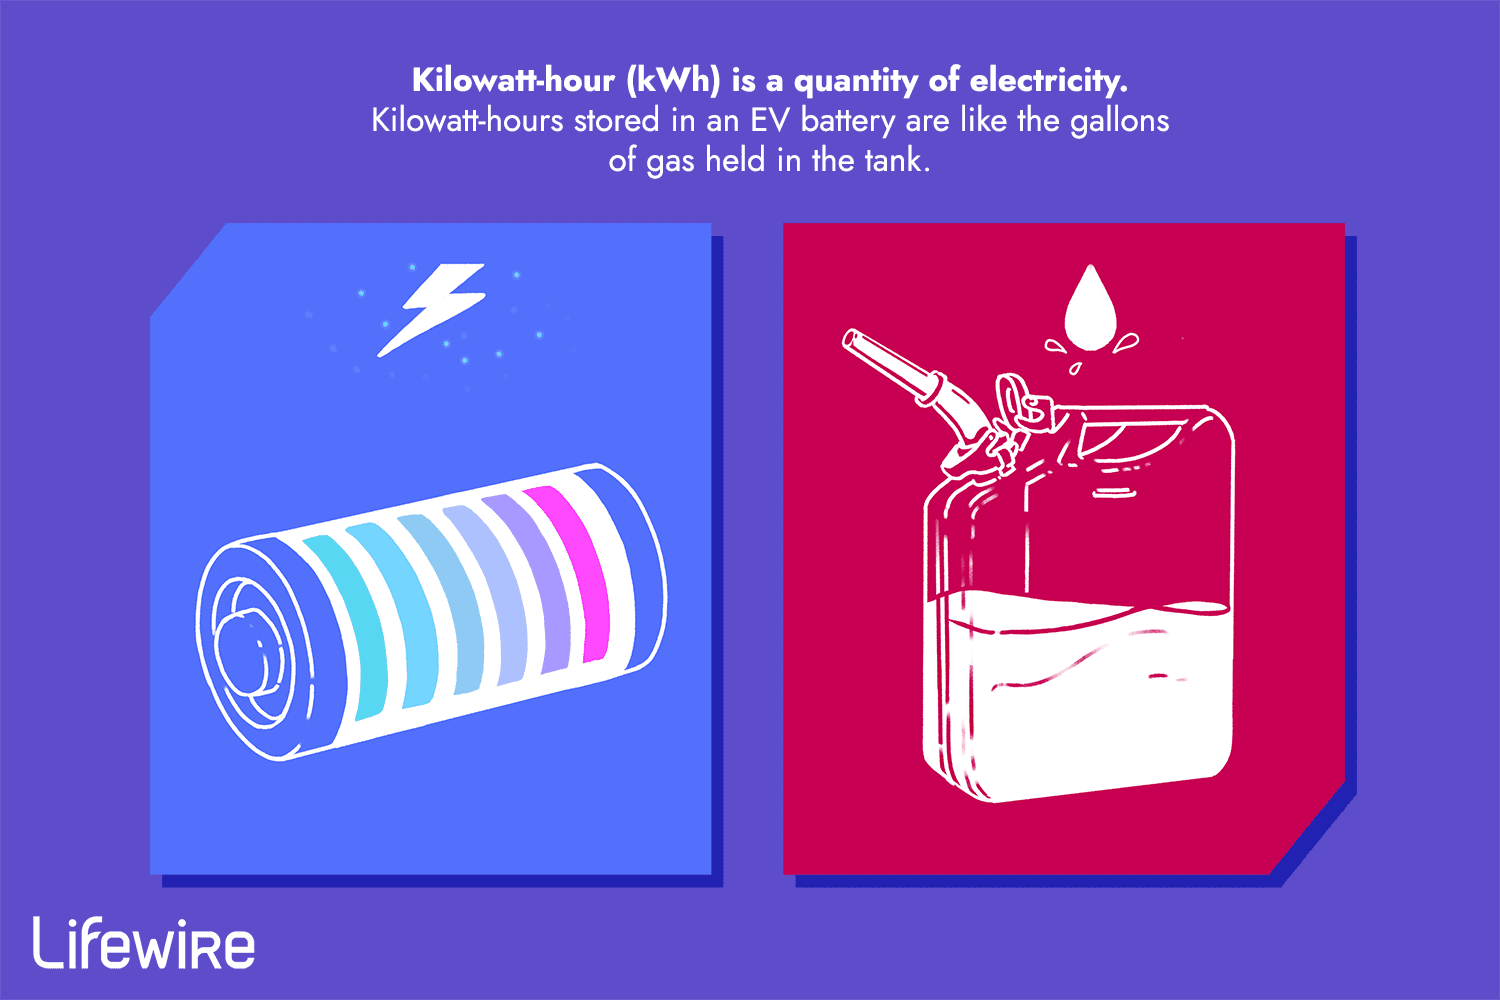 An illustration showing that kilowatt-hours are similar to gallons of gas.